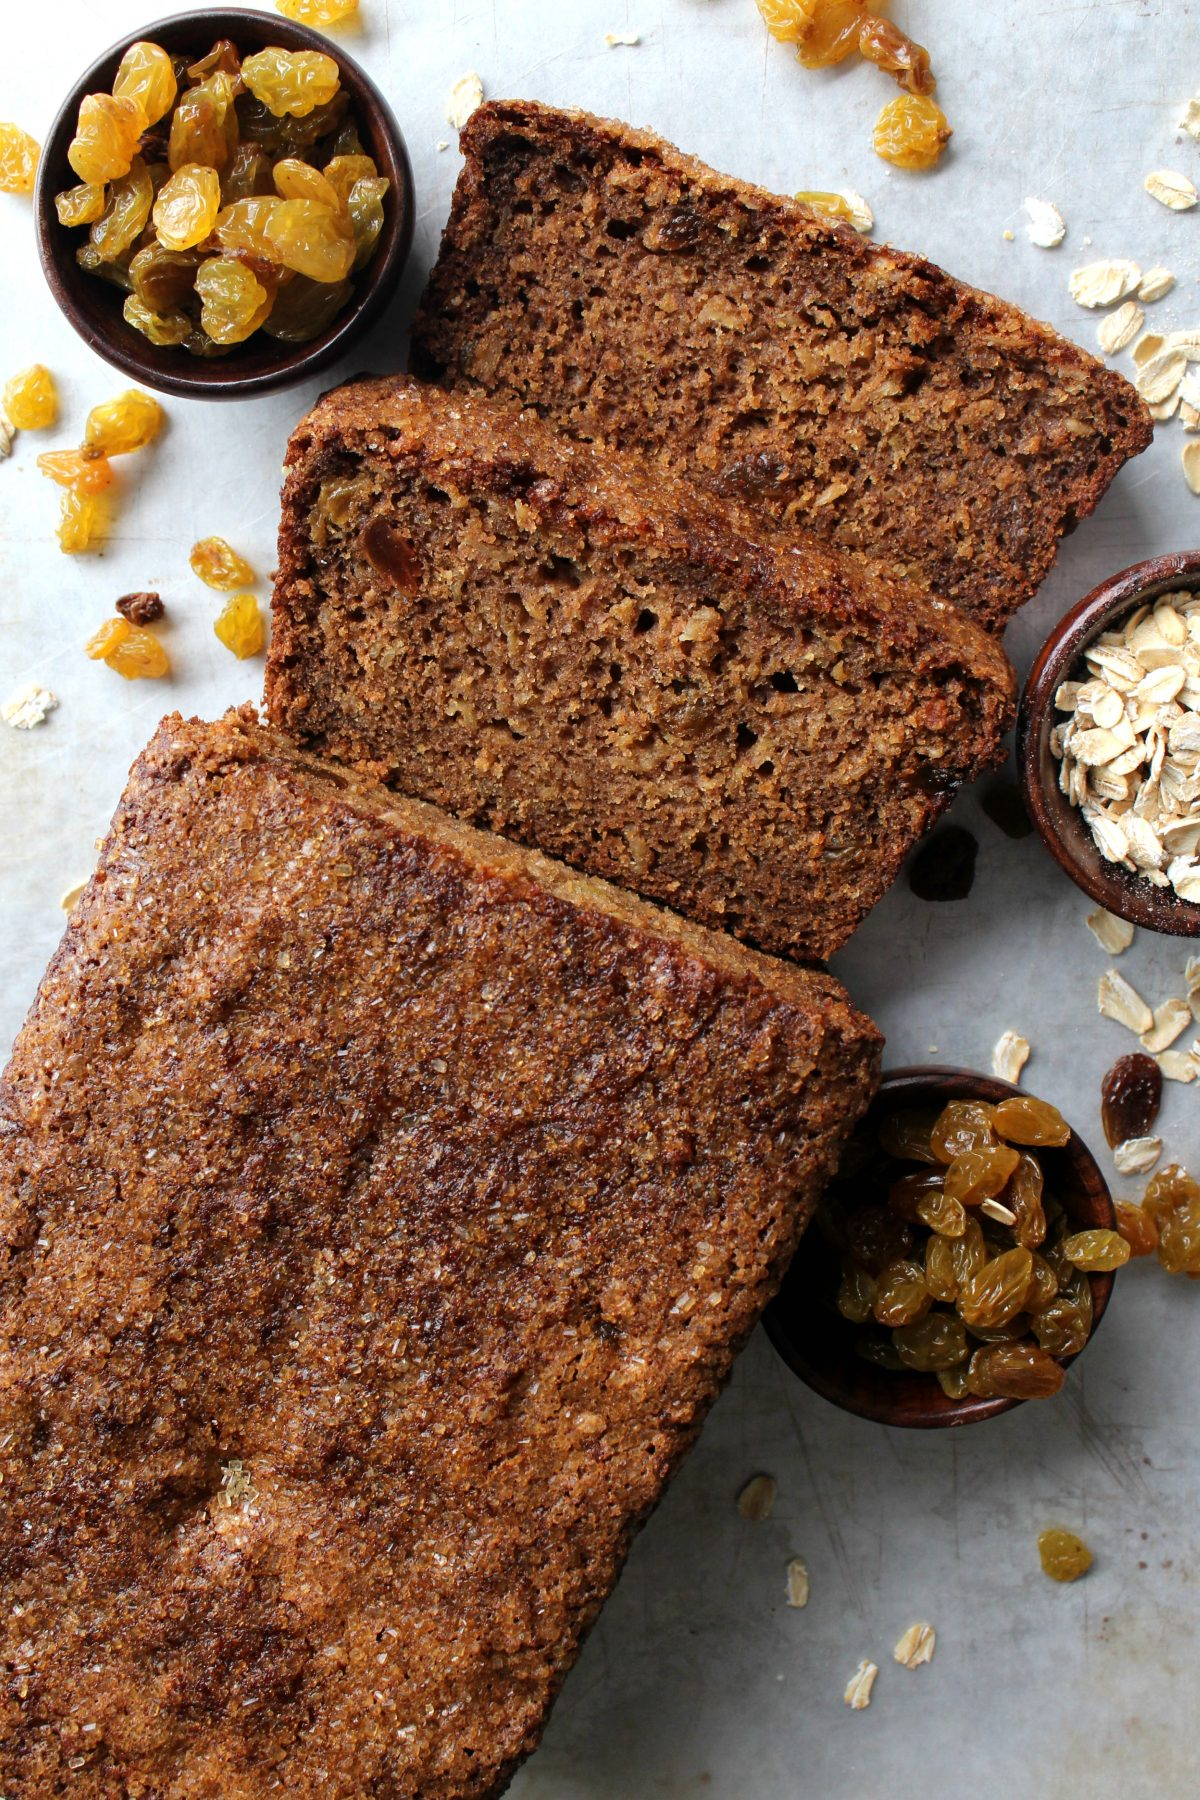 Oatmeal Raisin Quick Bread with two cut slices with little bowls of raisins and oatmeal.